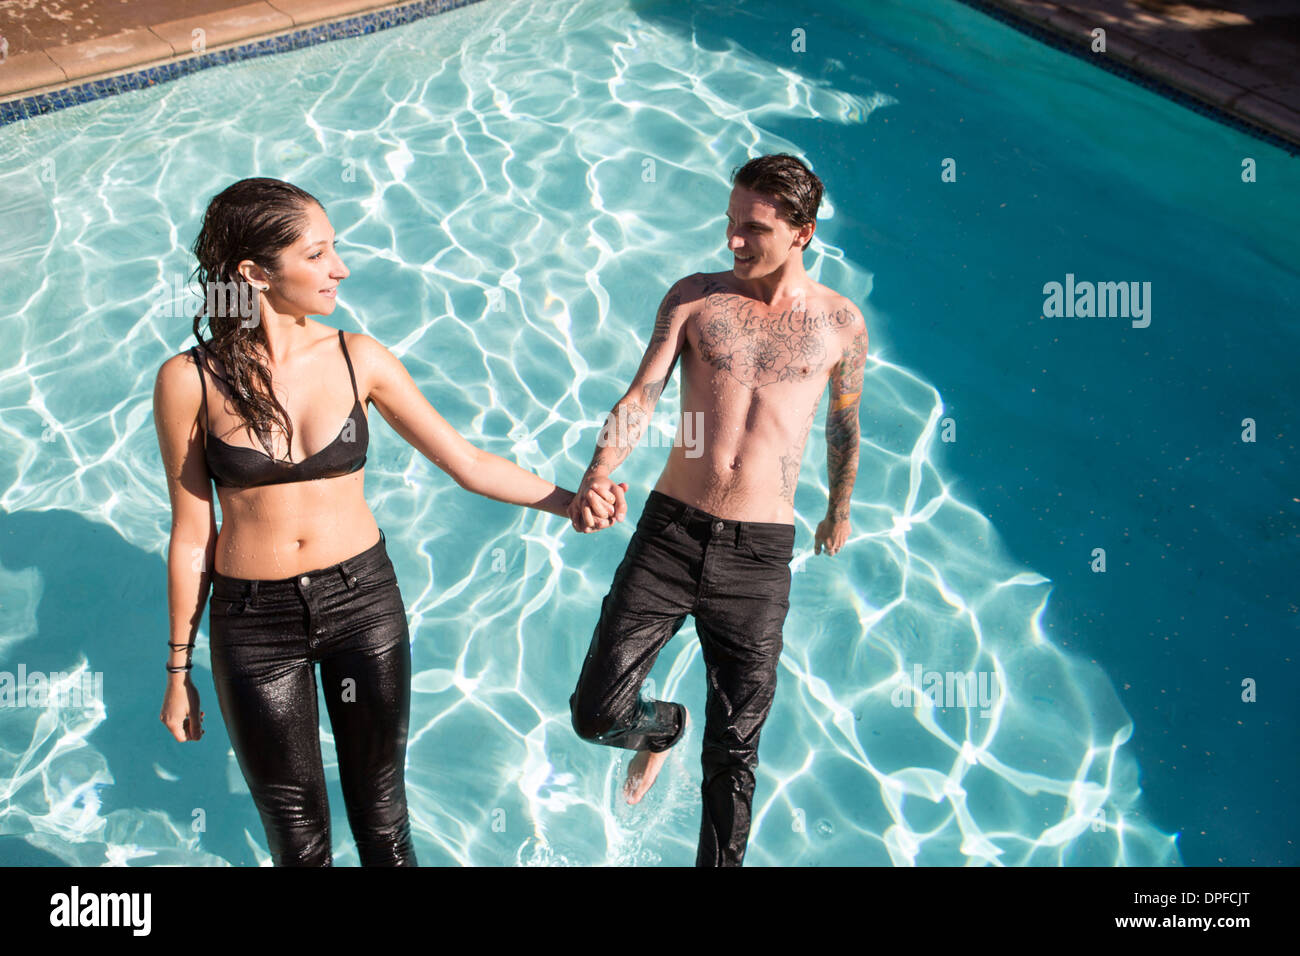 Young couple falling backwards into swimming pool - Stock Image